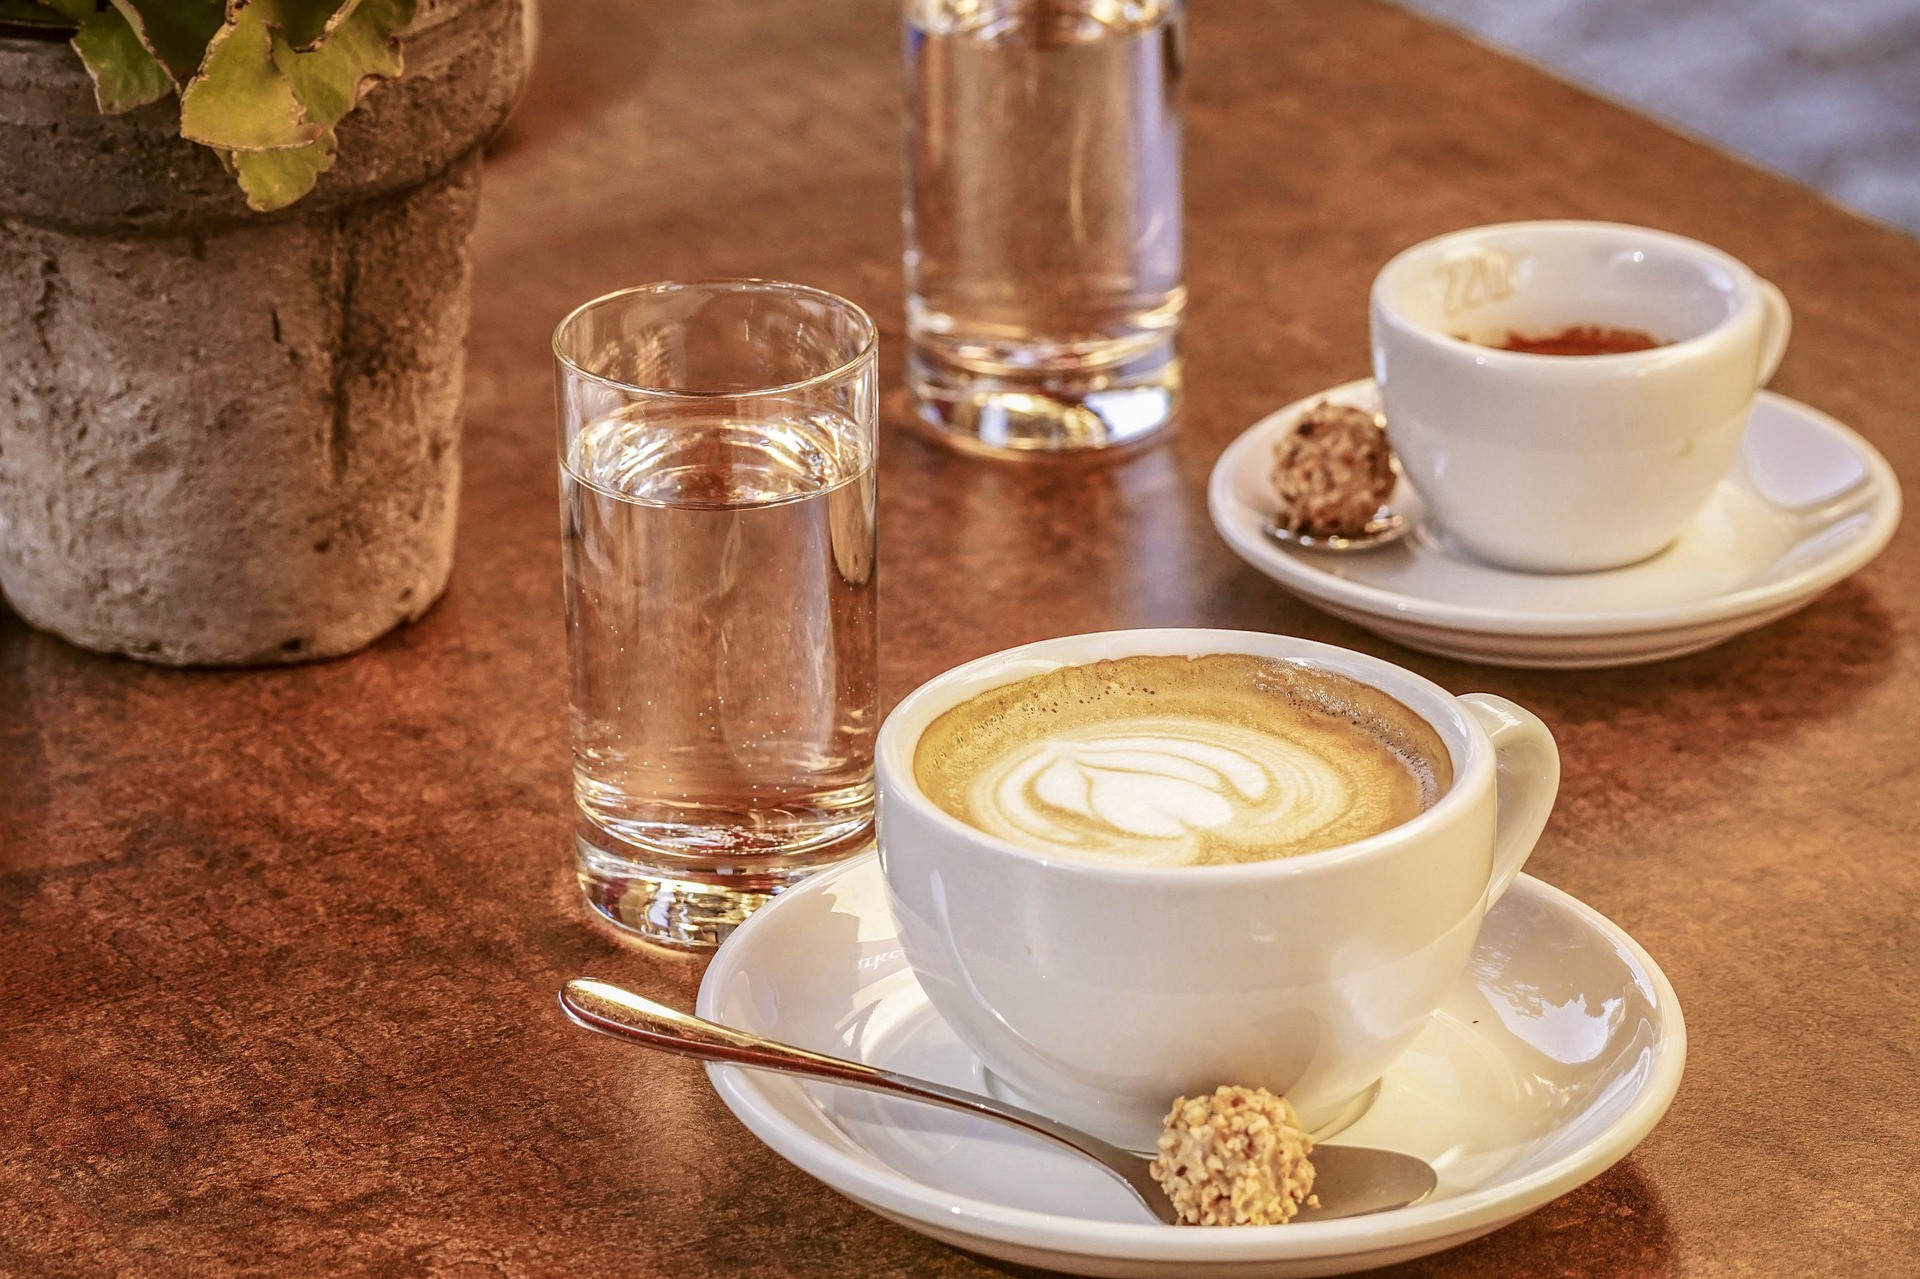 A glass of water and a cappuccino on a wooden table.